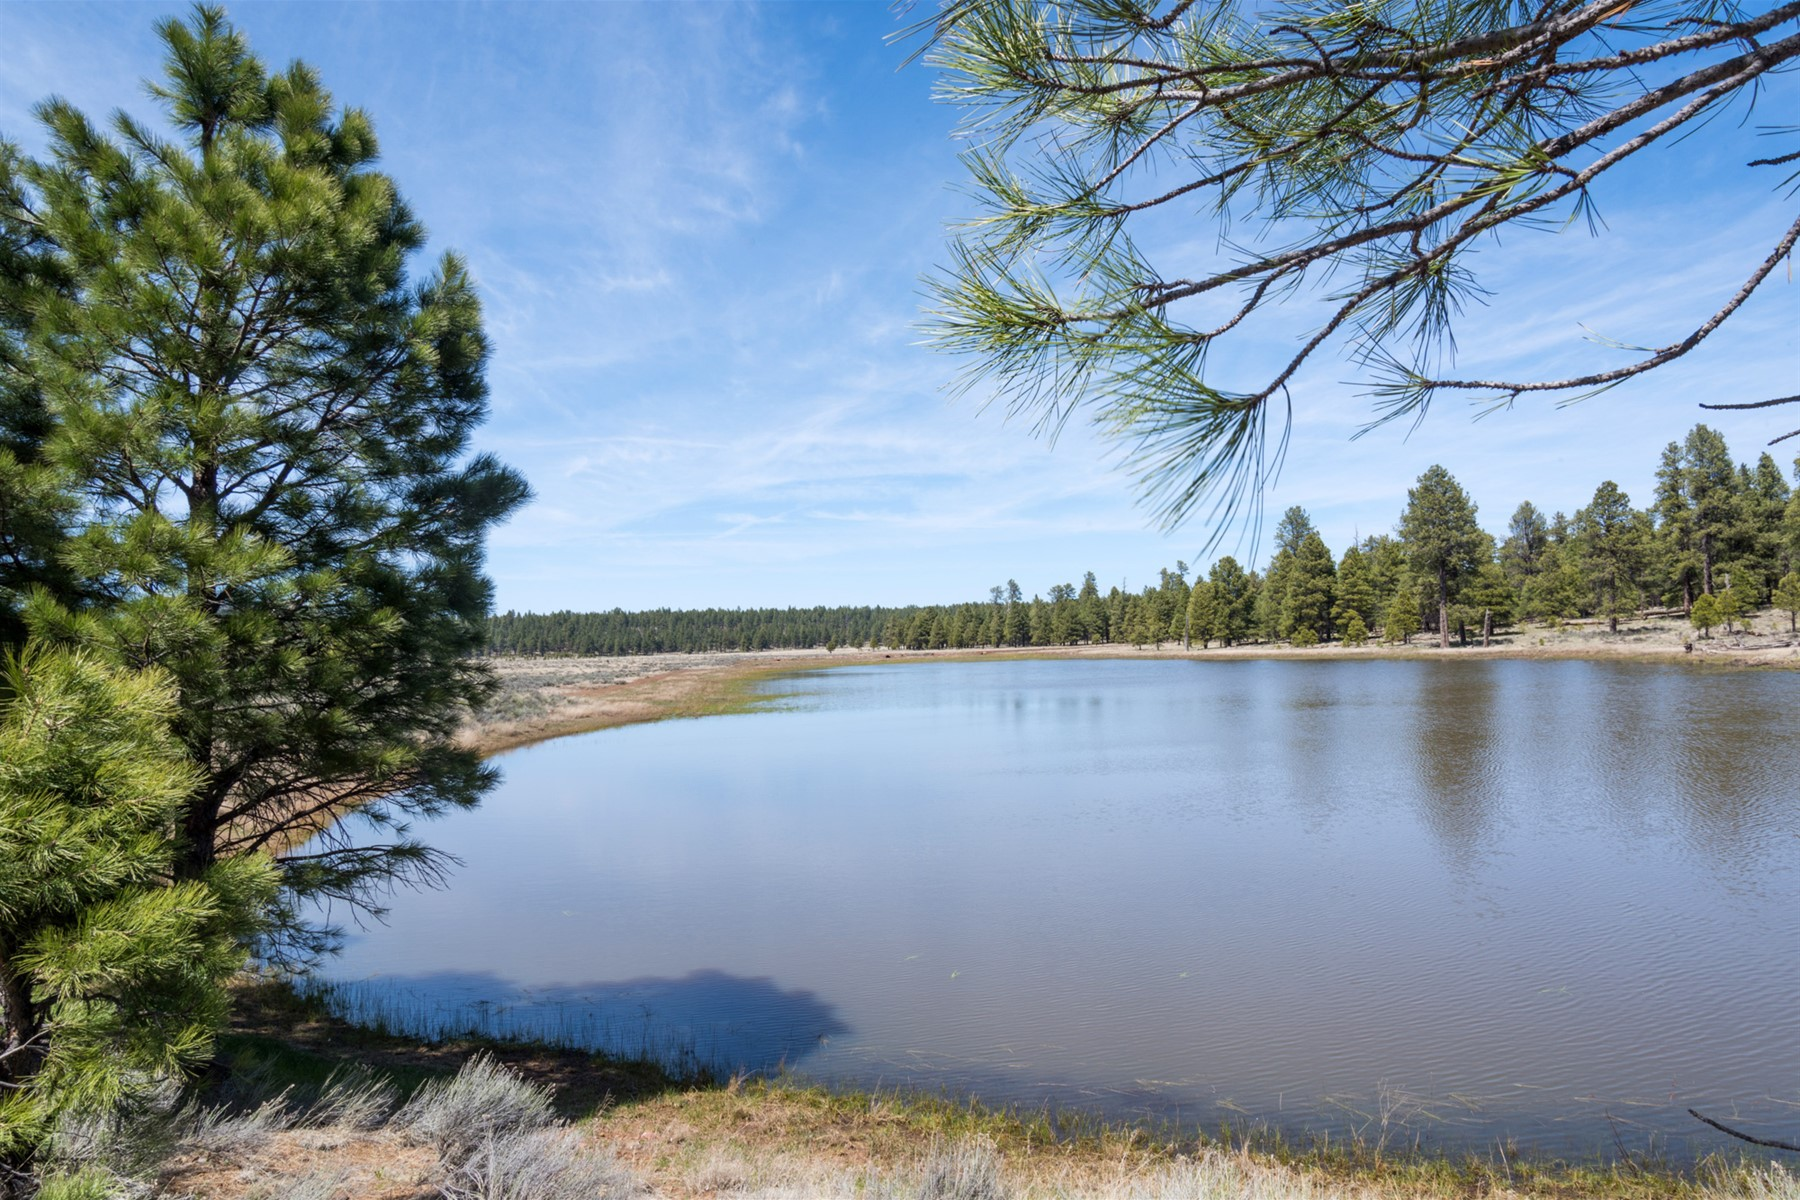 Land for Sale at Williams 00 Forest Service 140 Road RD 3 Williams, Arizona 86046 United States